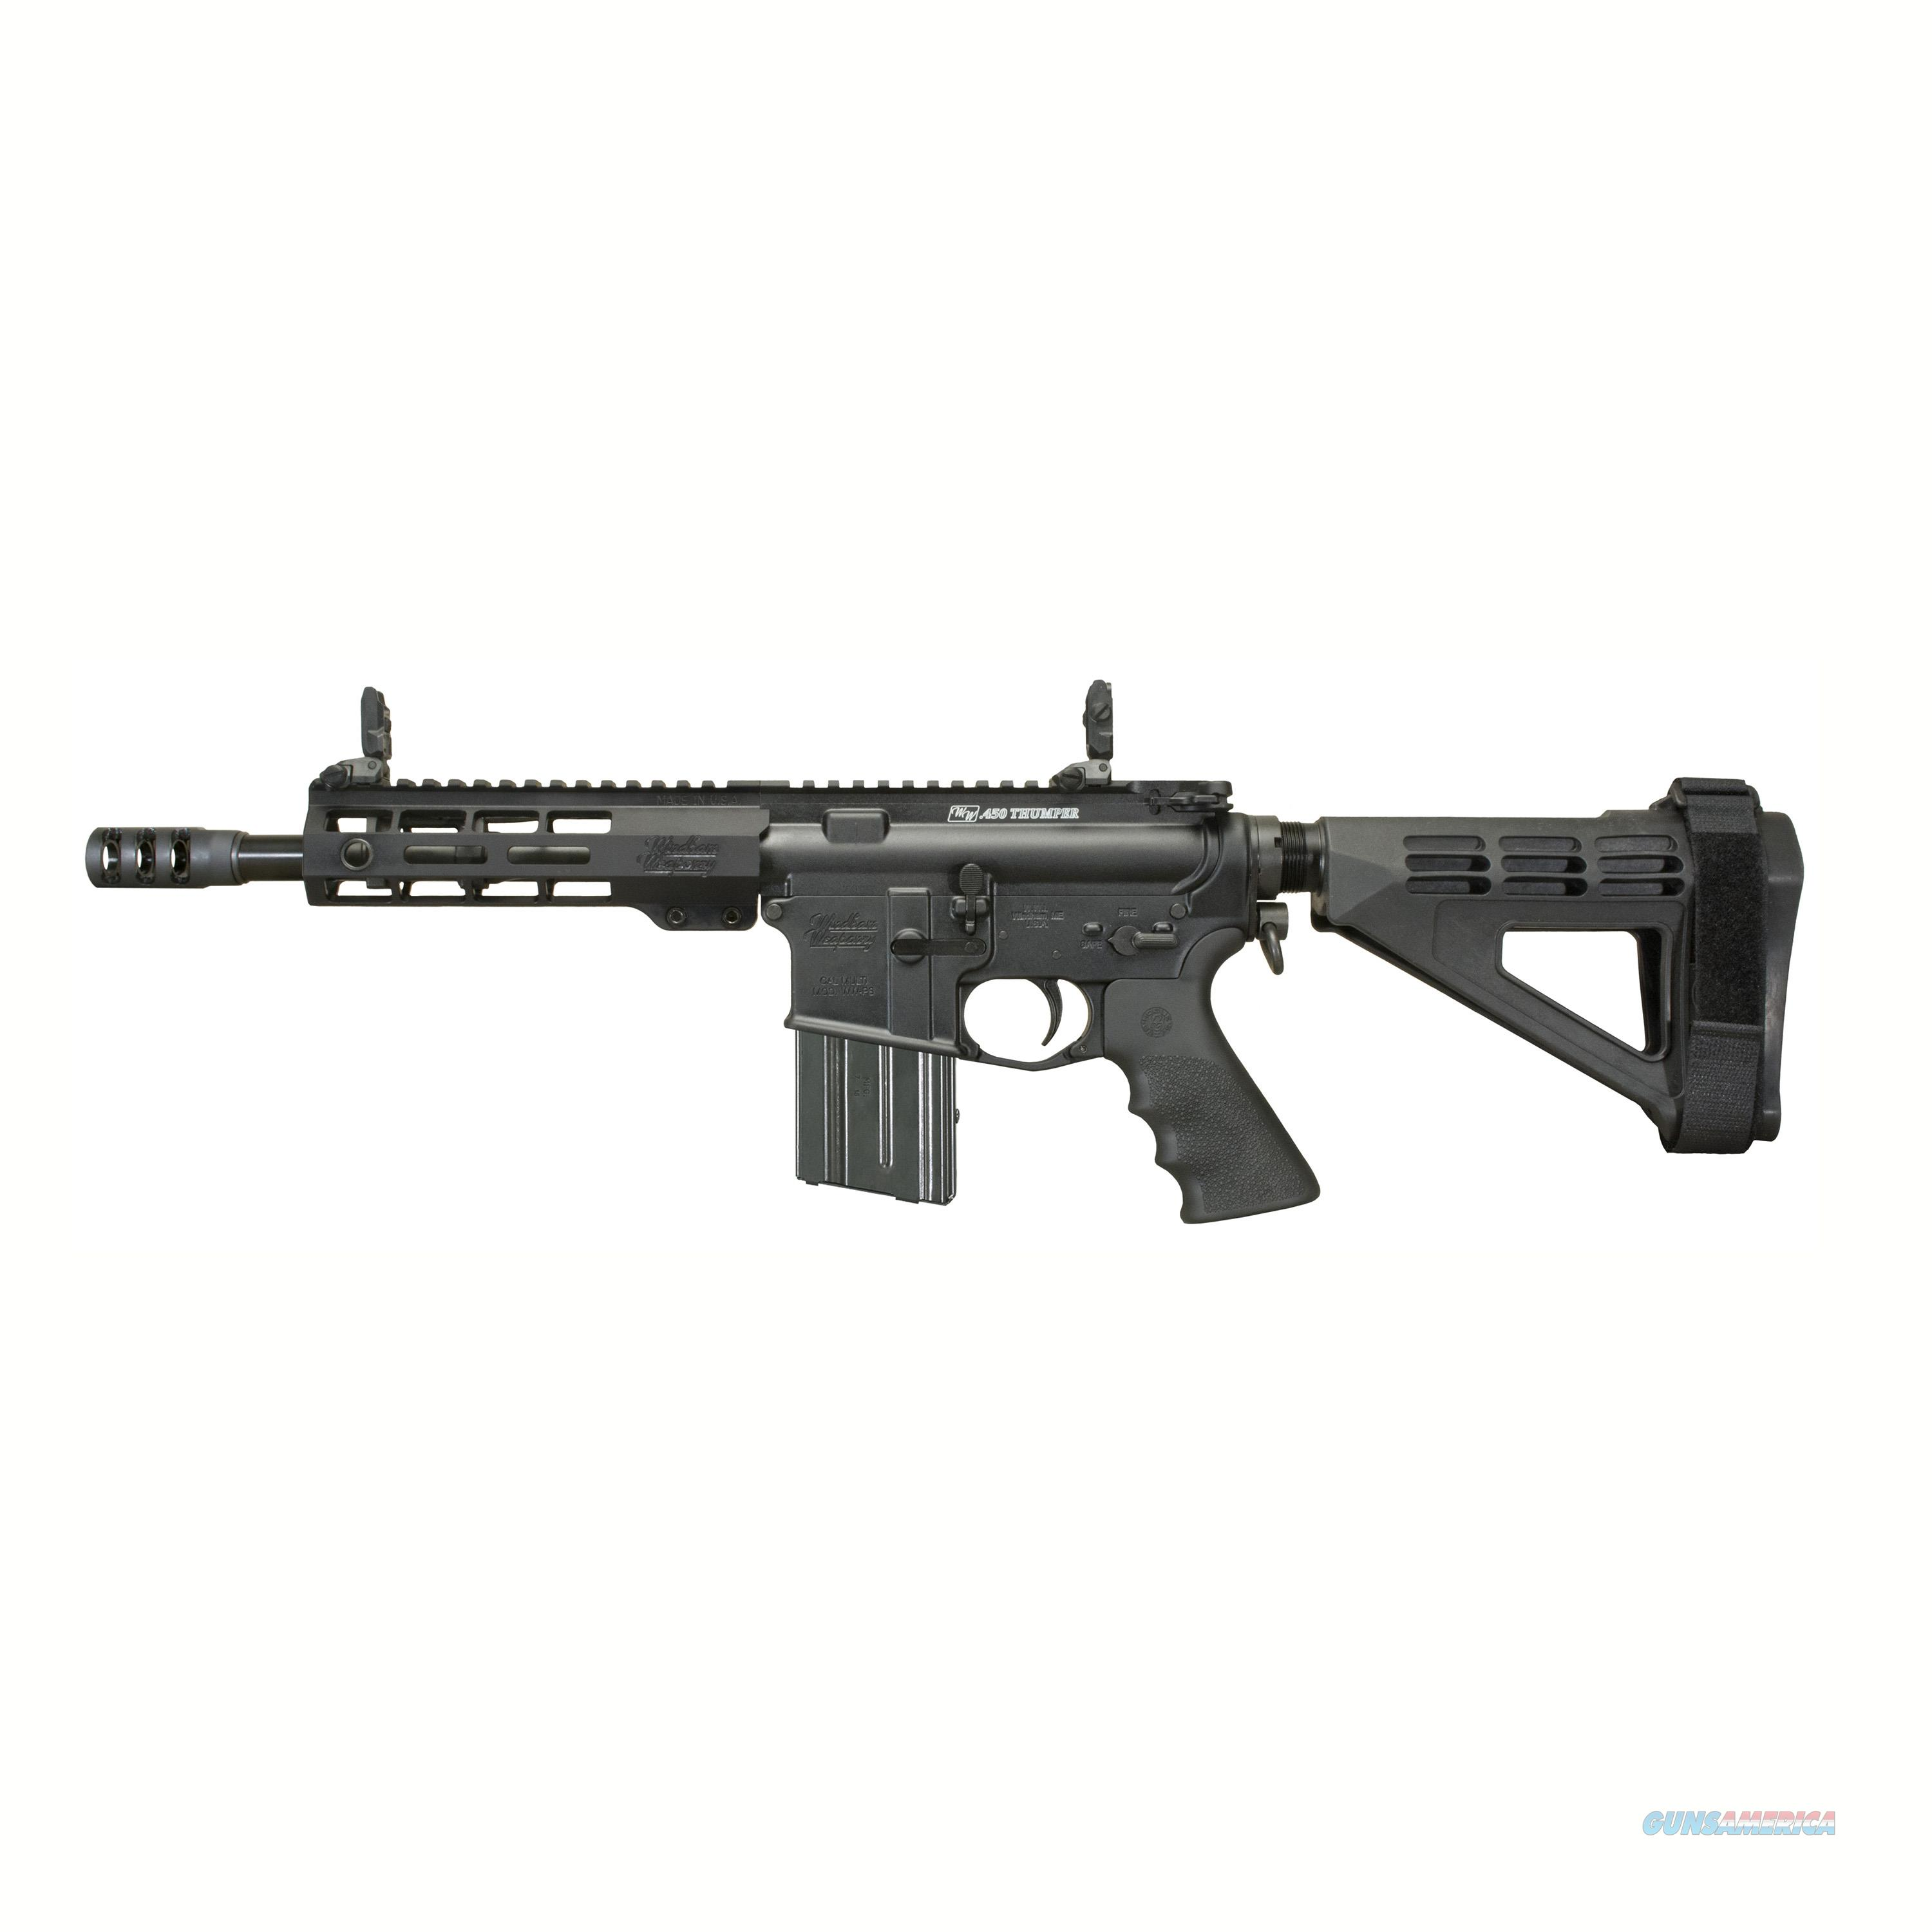 "Windham Weaponry 450 Bushmaster, 9"" Barrel, 5 Rounds, Magpul Mbus Sights RP9SFS-450M  Guns > Pistols > W Misc Pistols"